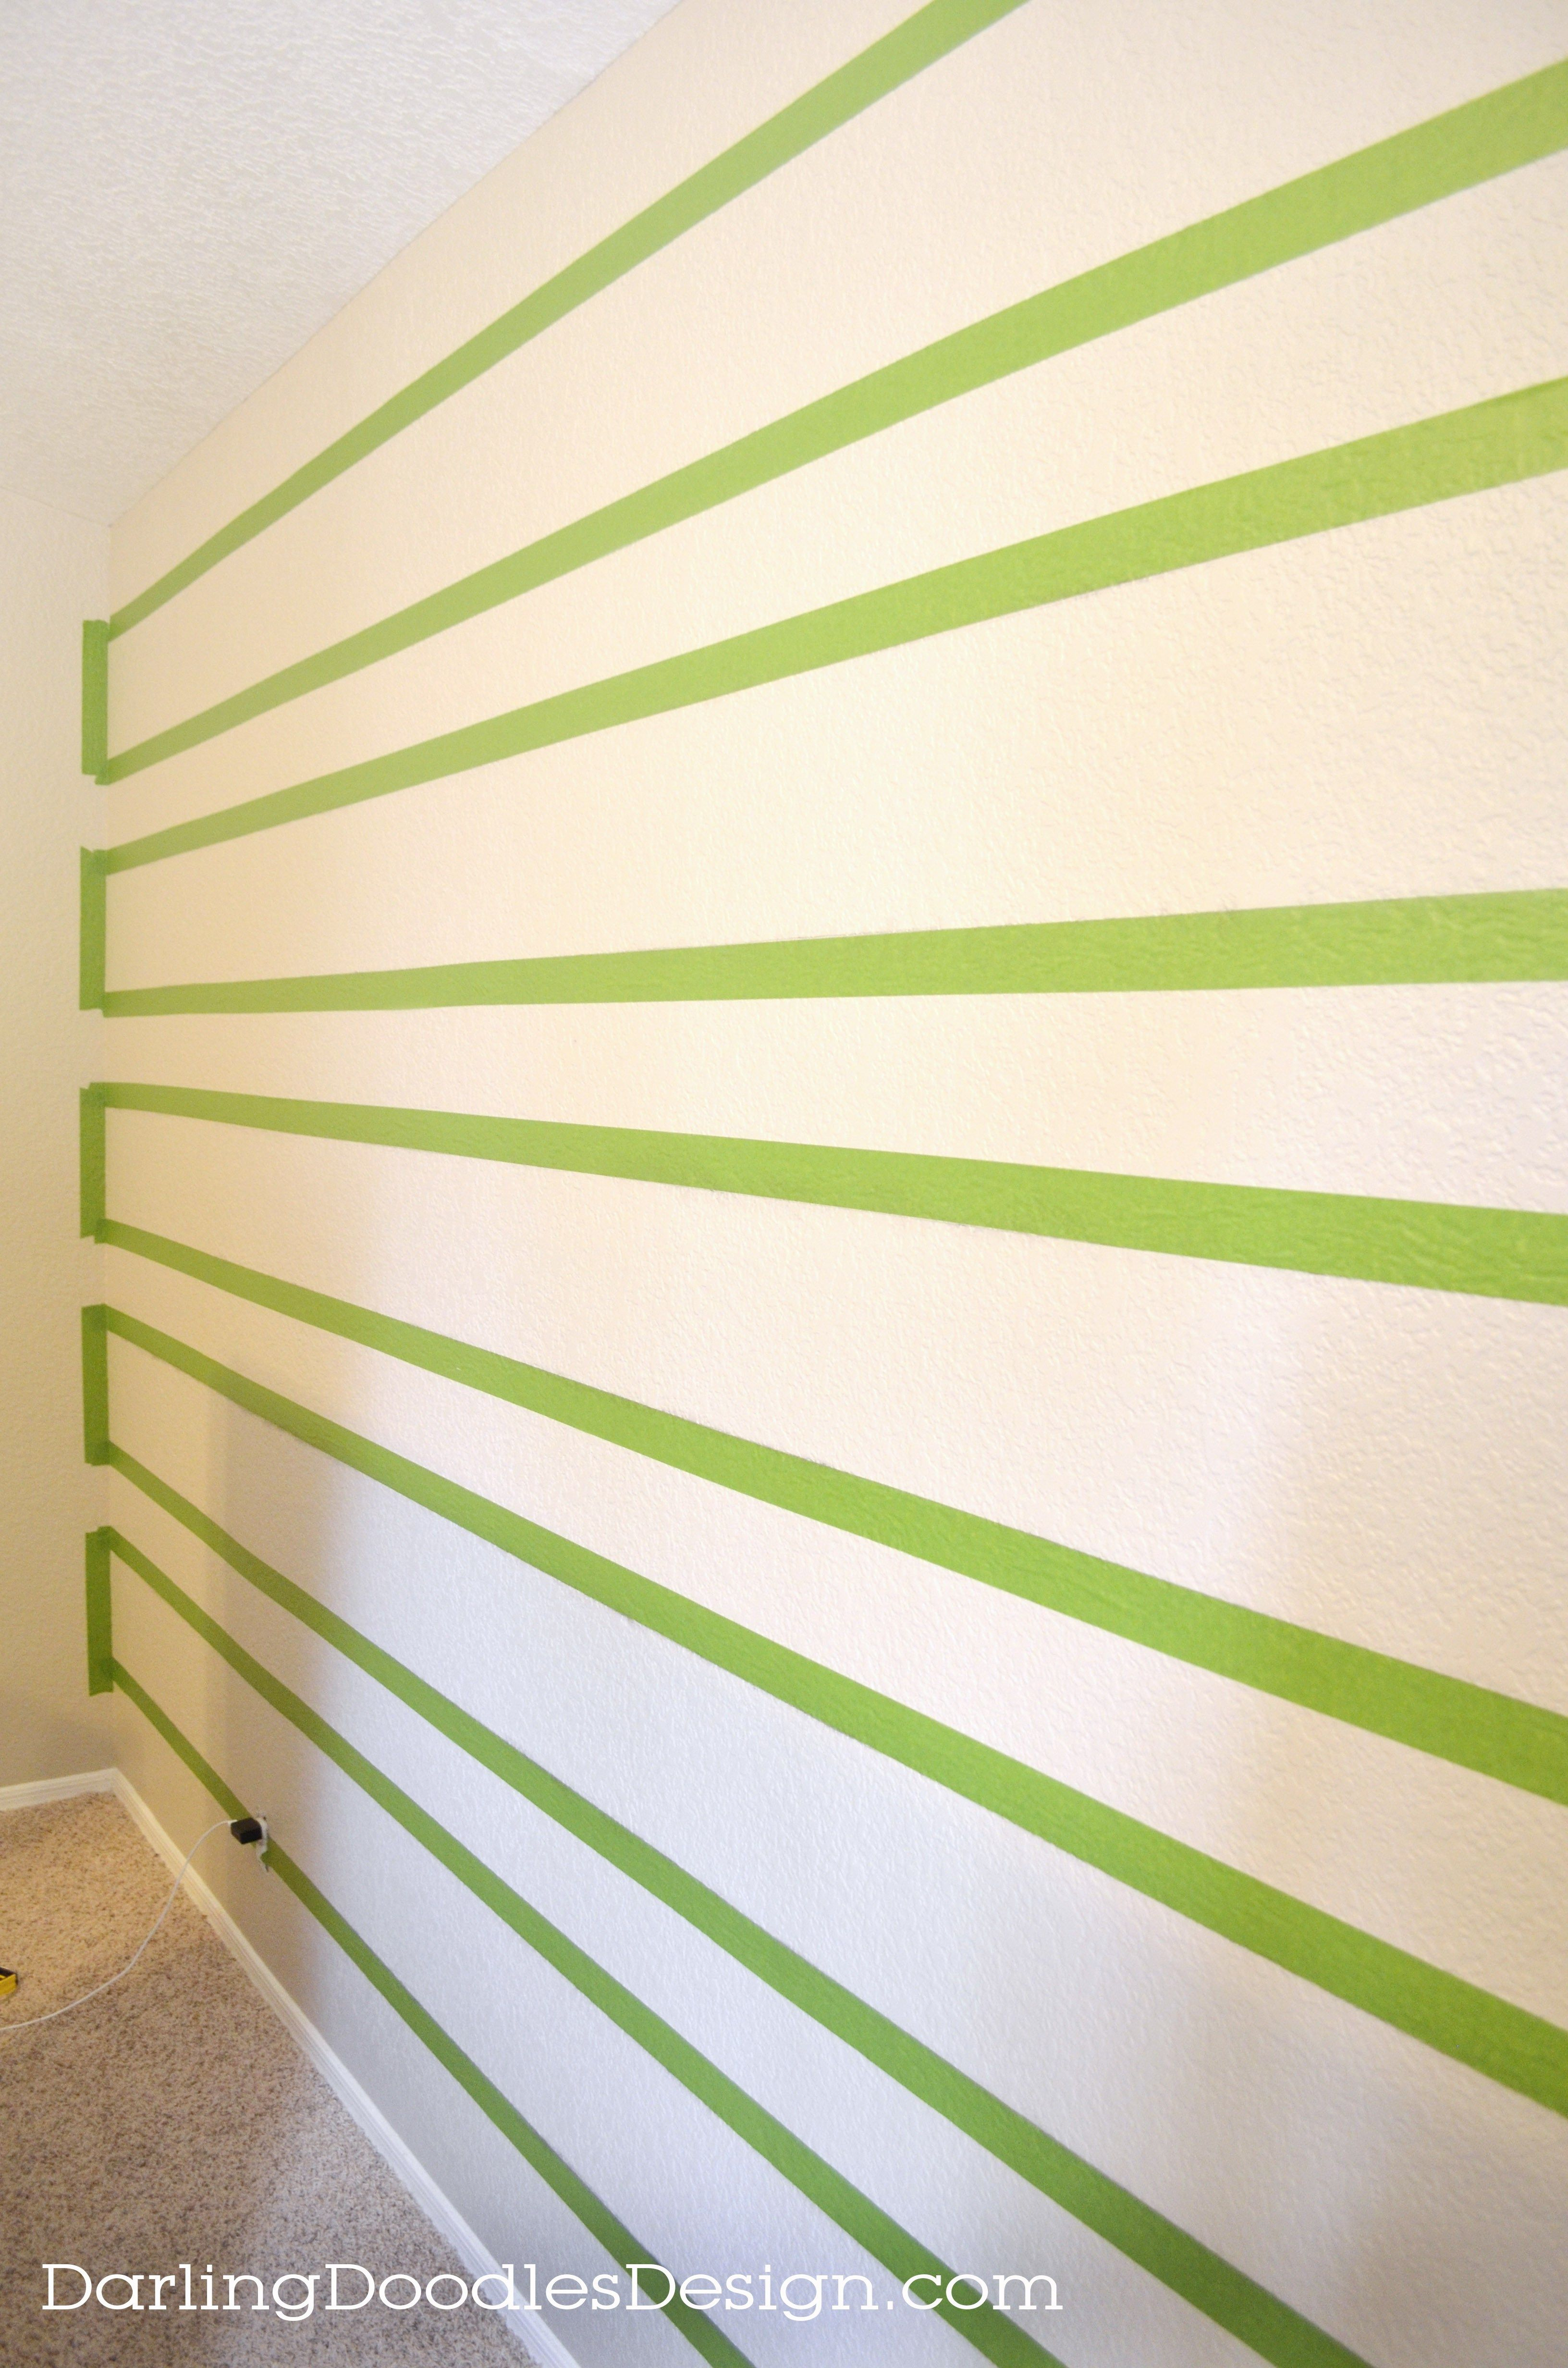 How To Paint Crisp, Clean Lines on Textured Walls | Decorating ideas ...